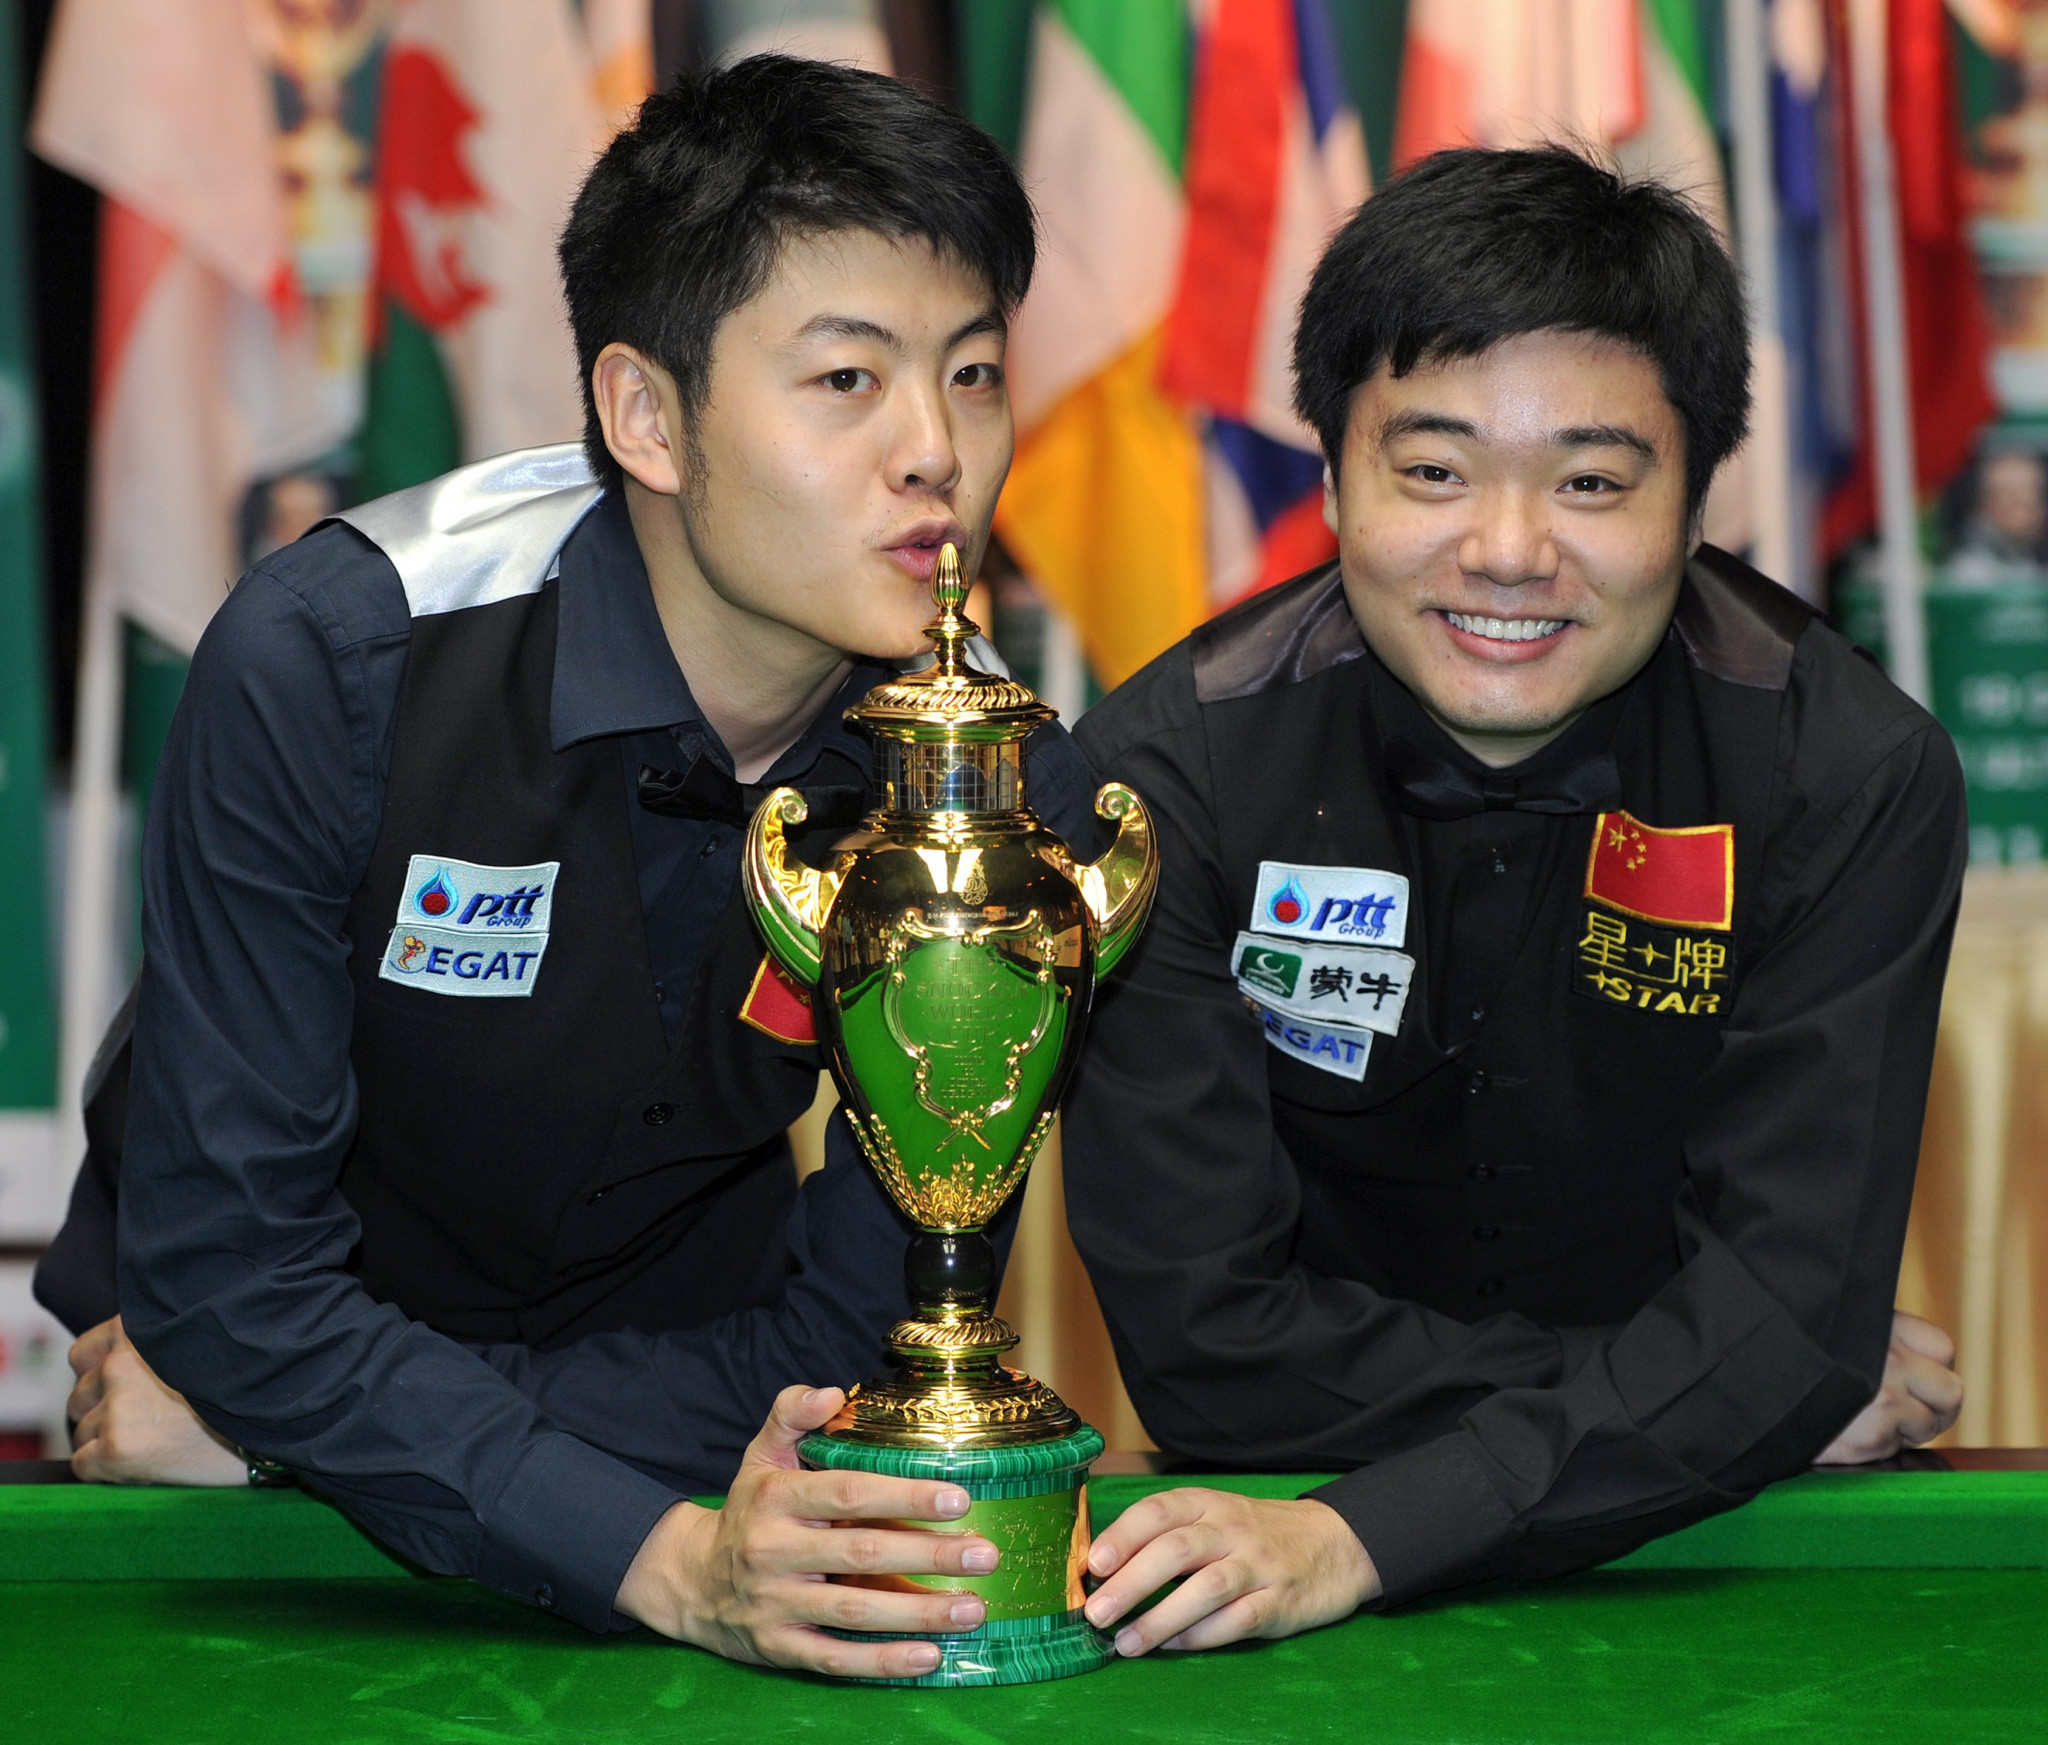 The Snooker World Cup returned from a 10-year hiatus in 2011, when China's Ding Junhui and Liang Wenbo triumphed in Bangkok ©Getty Images